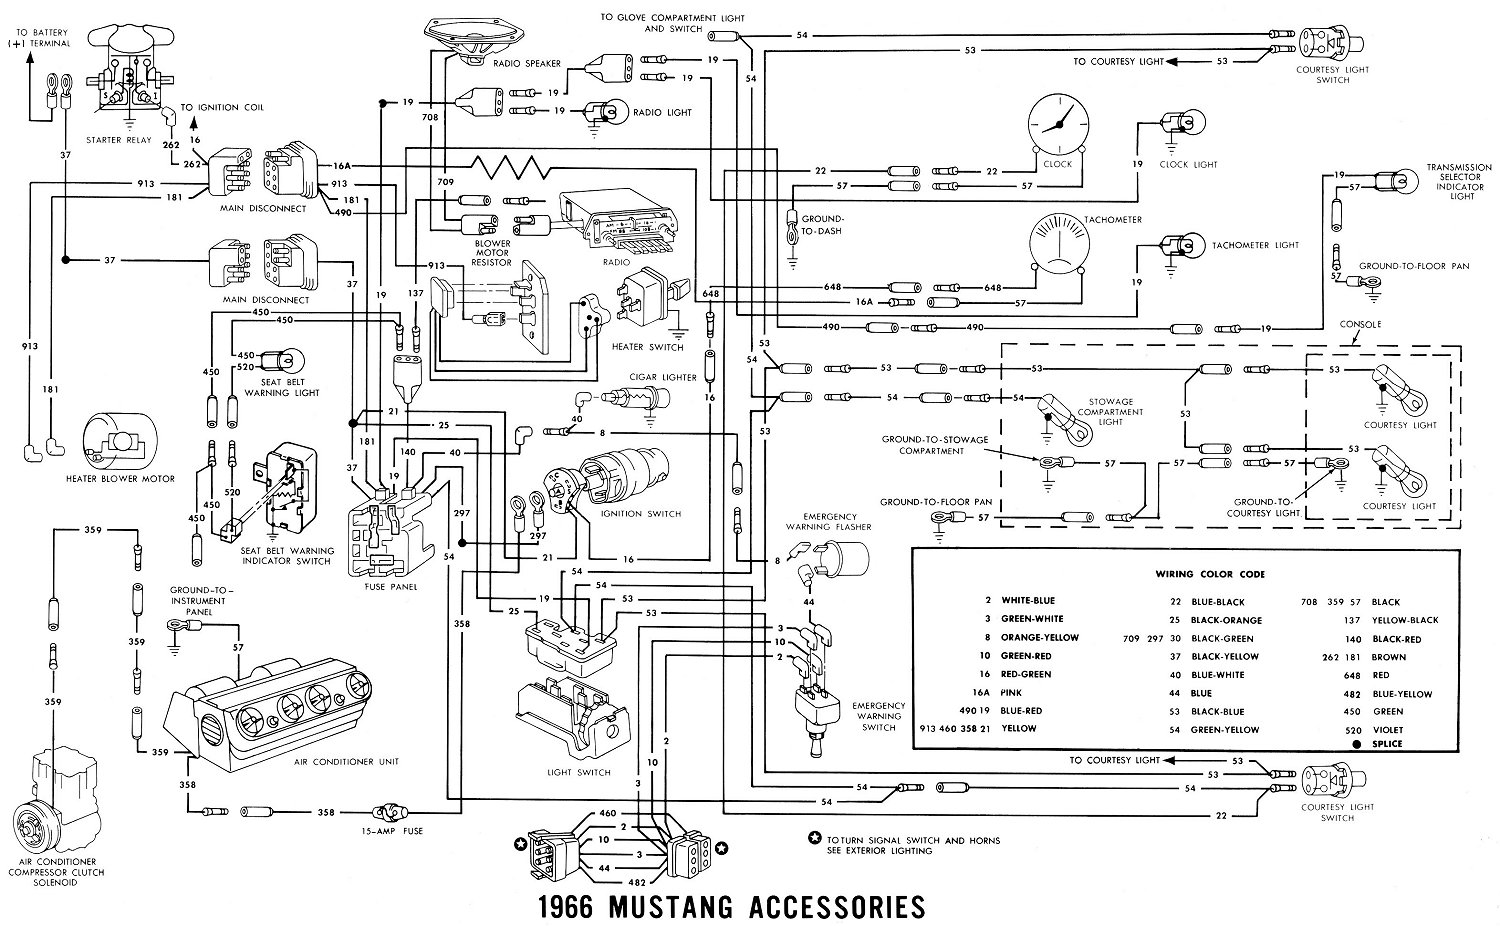 wiring diagram 1966 mustang ireleast info 1966 mustang wiring diagrams average joe restoration wiring diagram